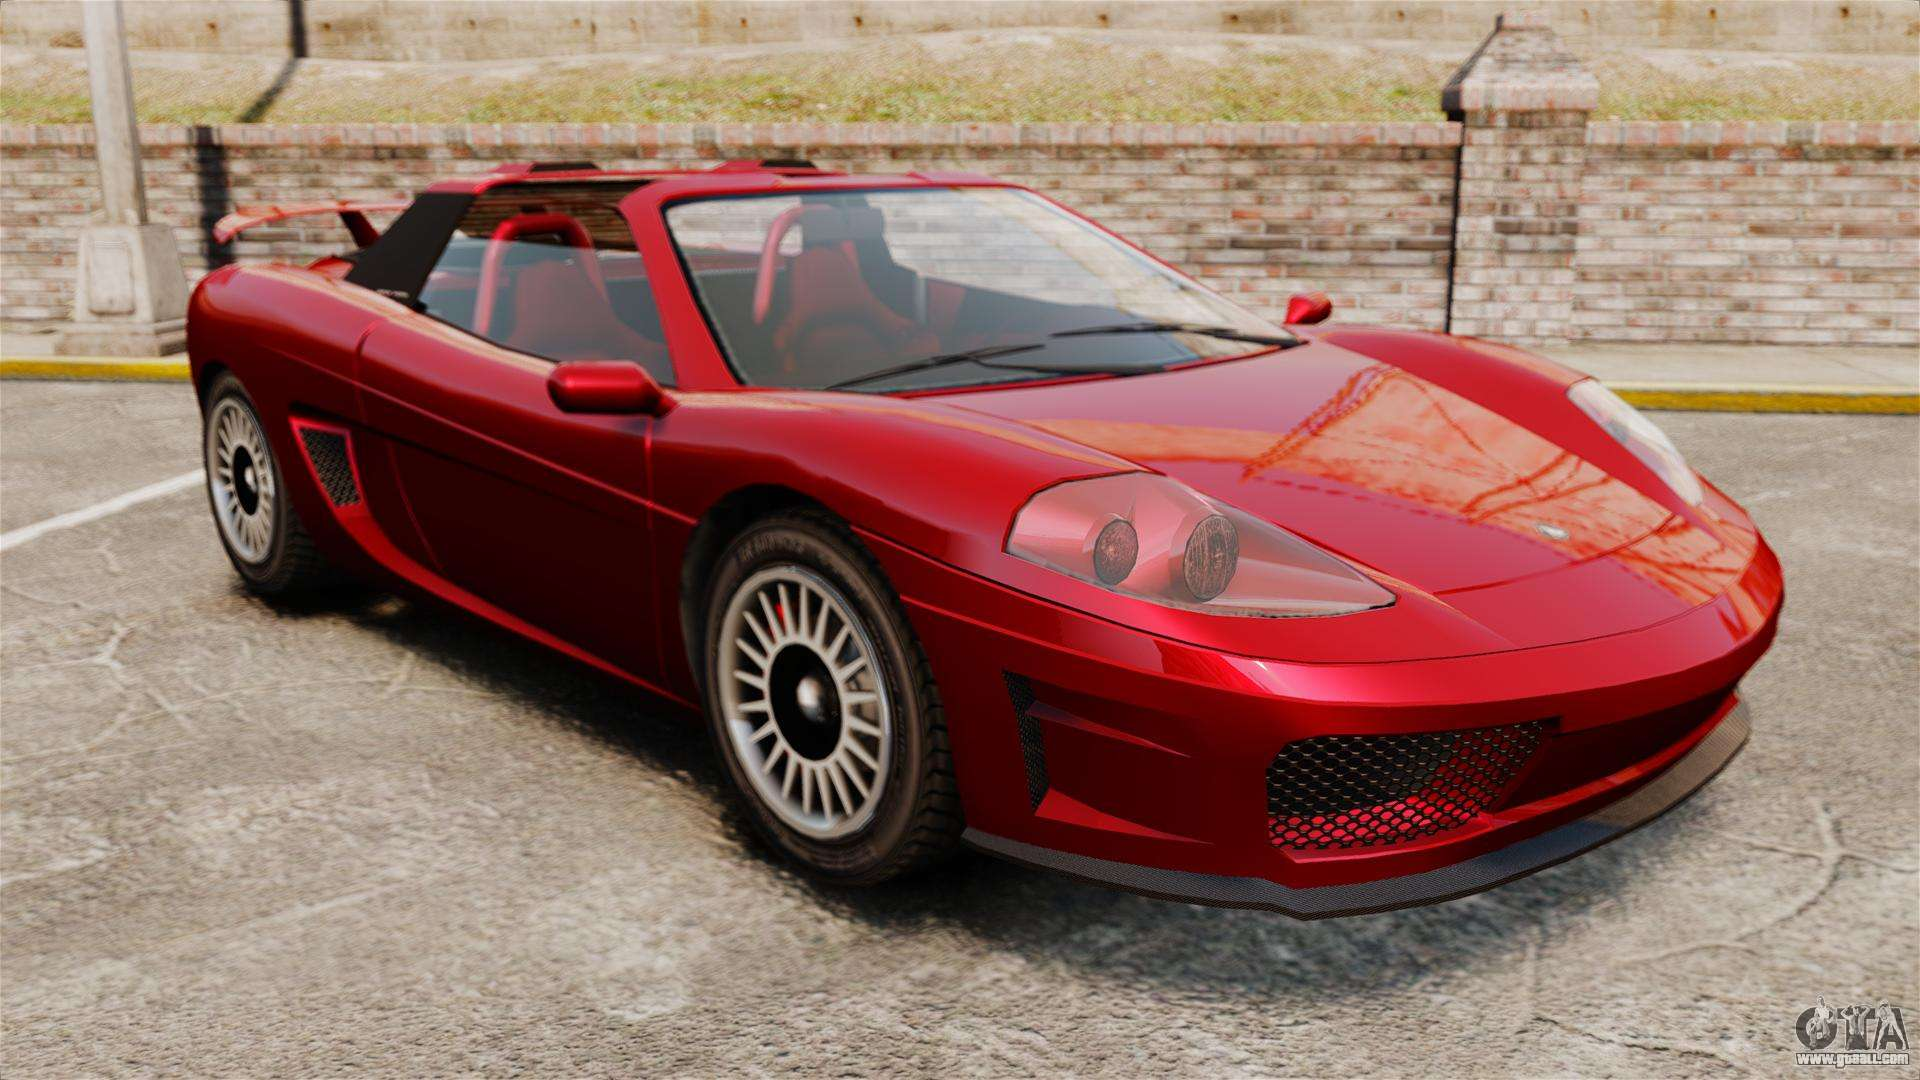 The New Turismo for GTA 4